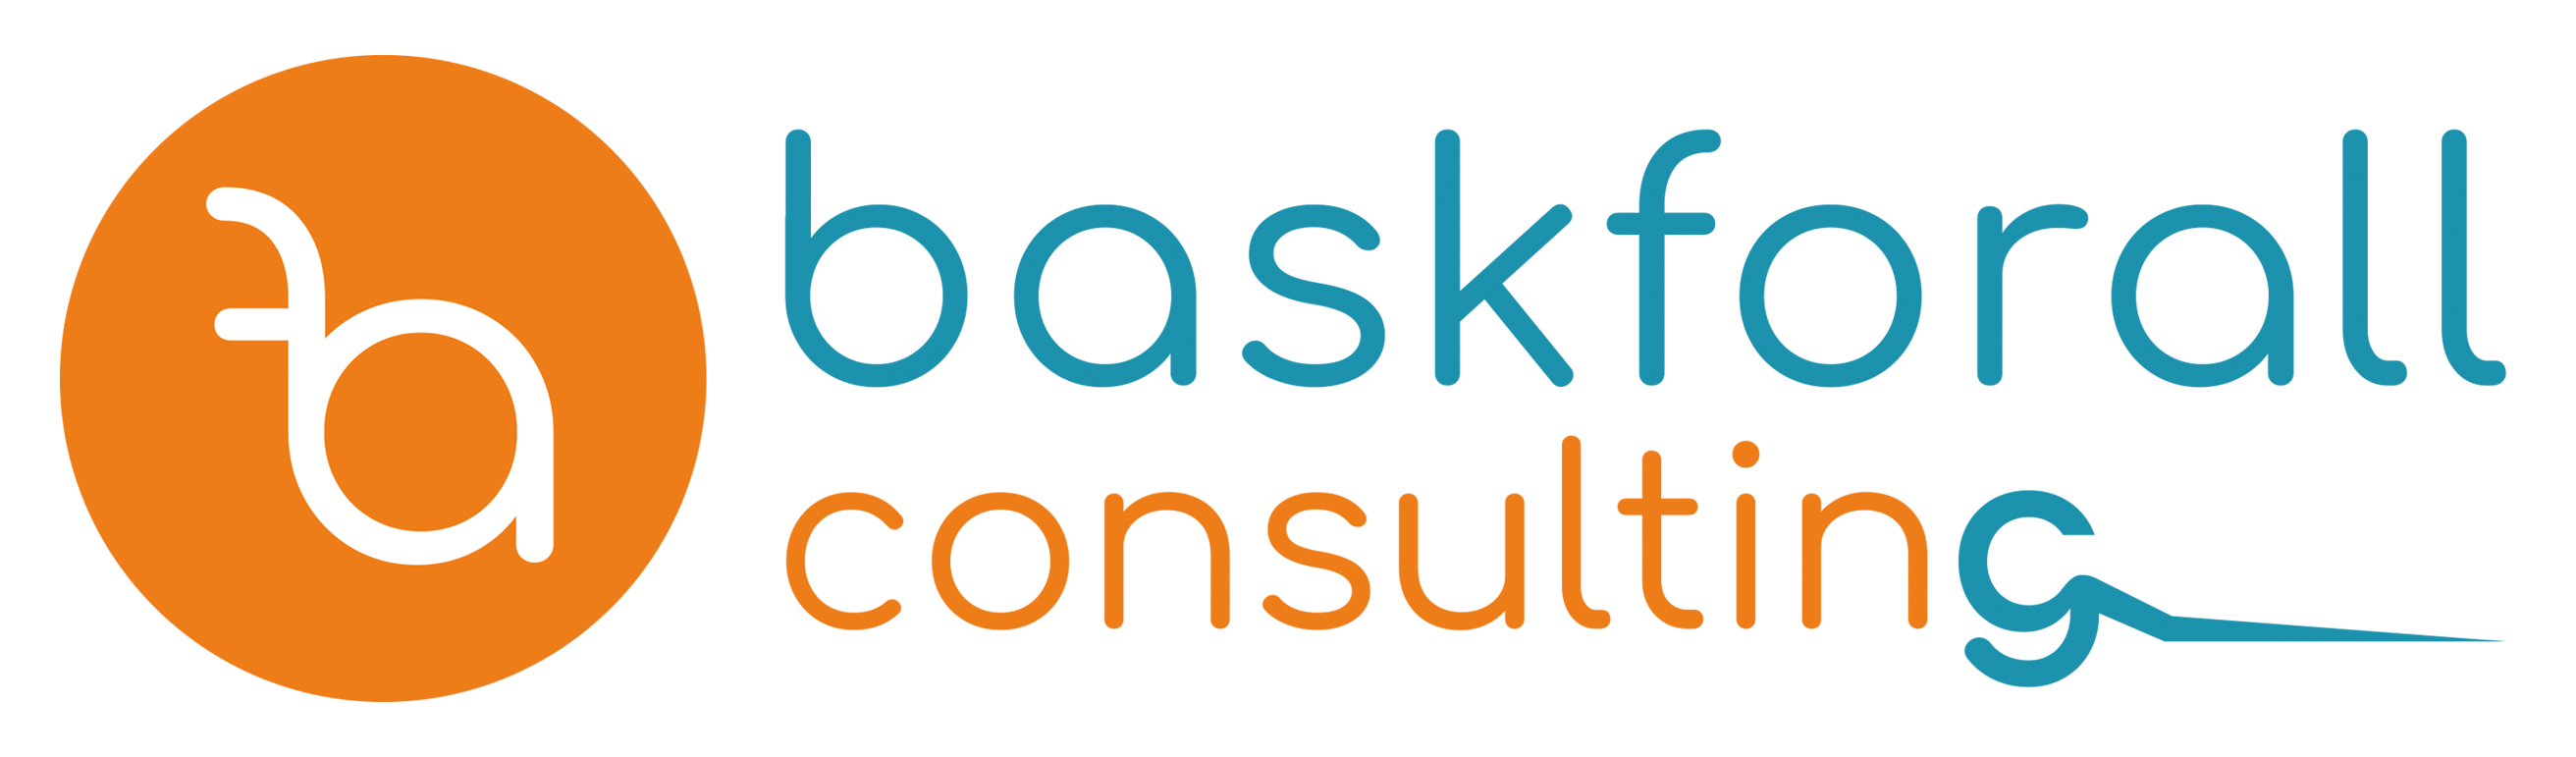 Baskforall Consulting